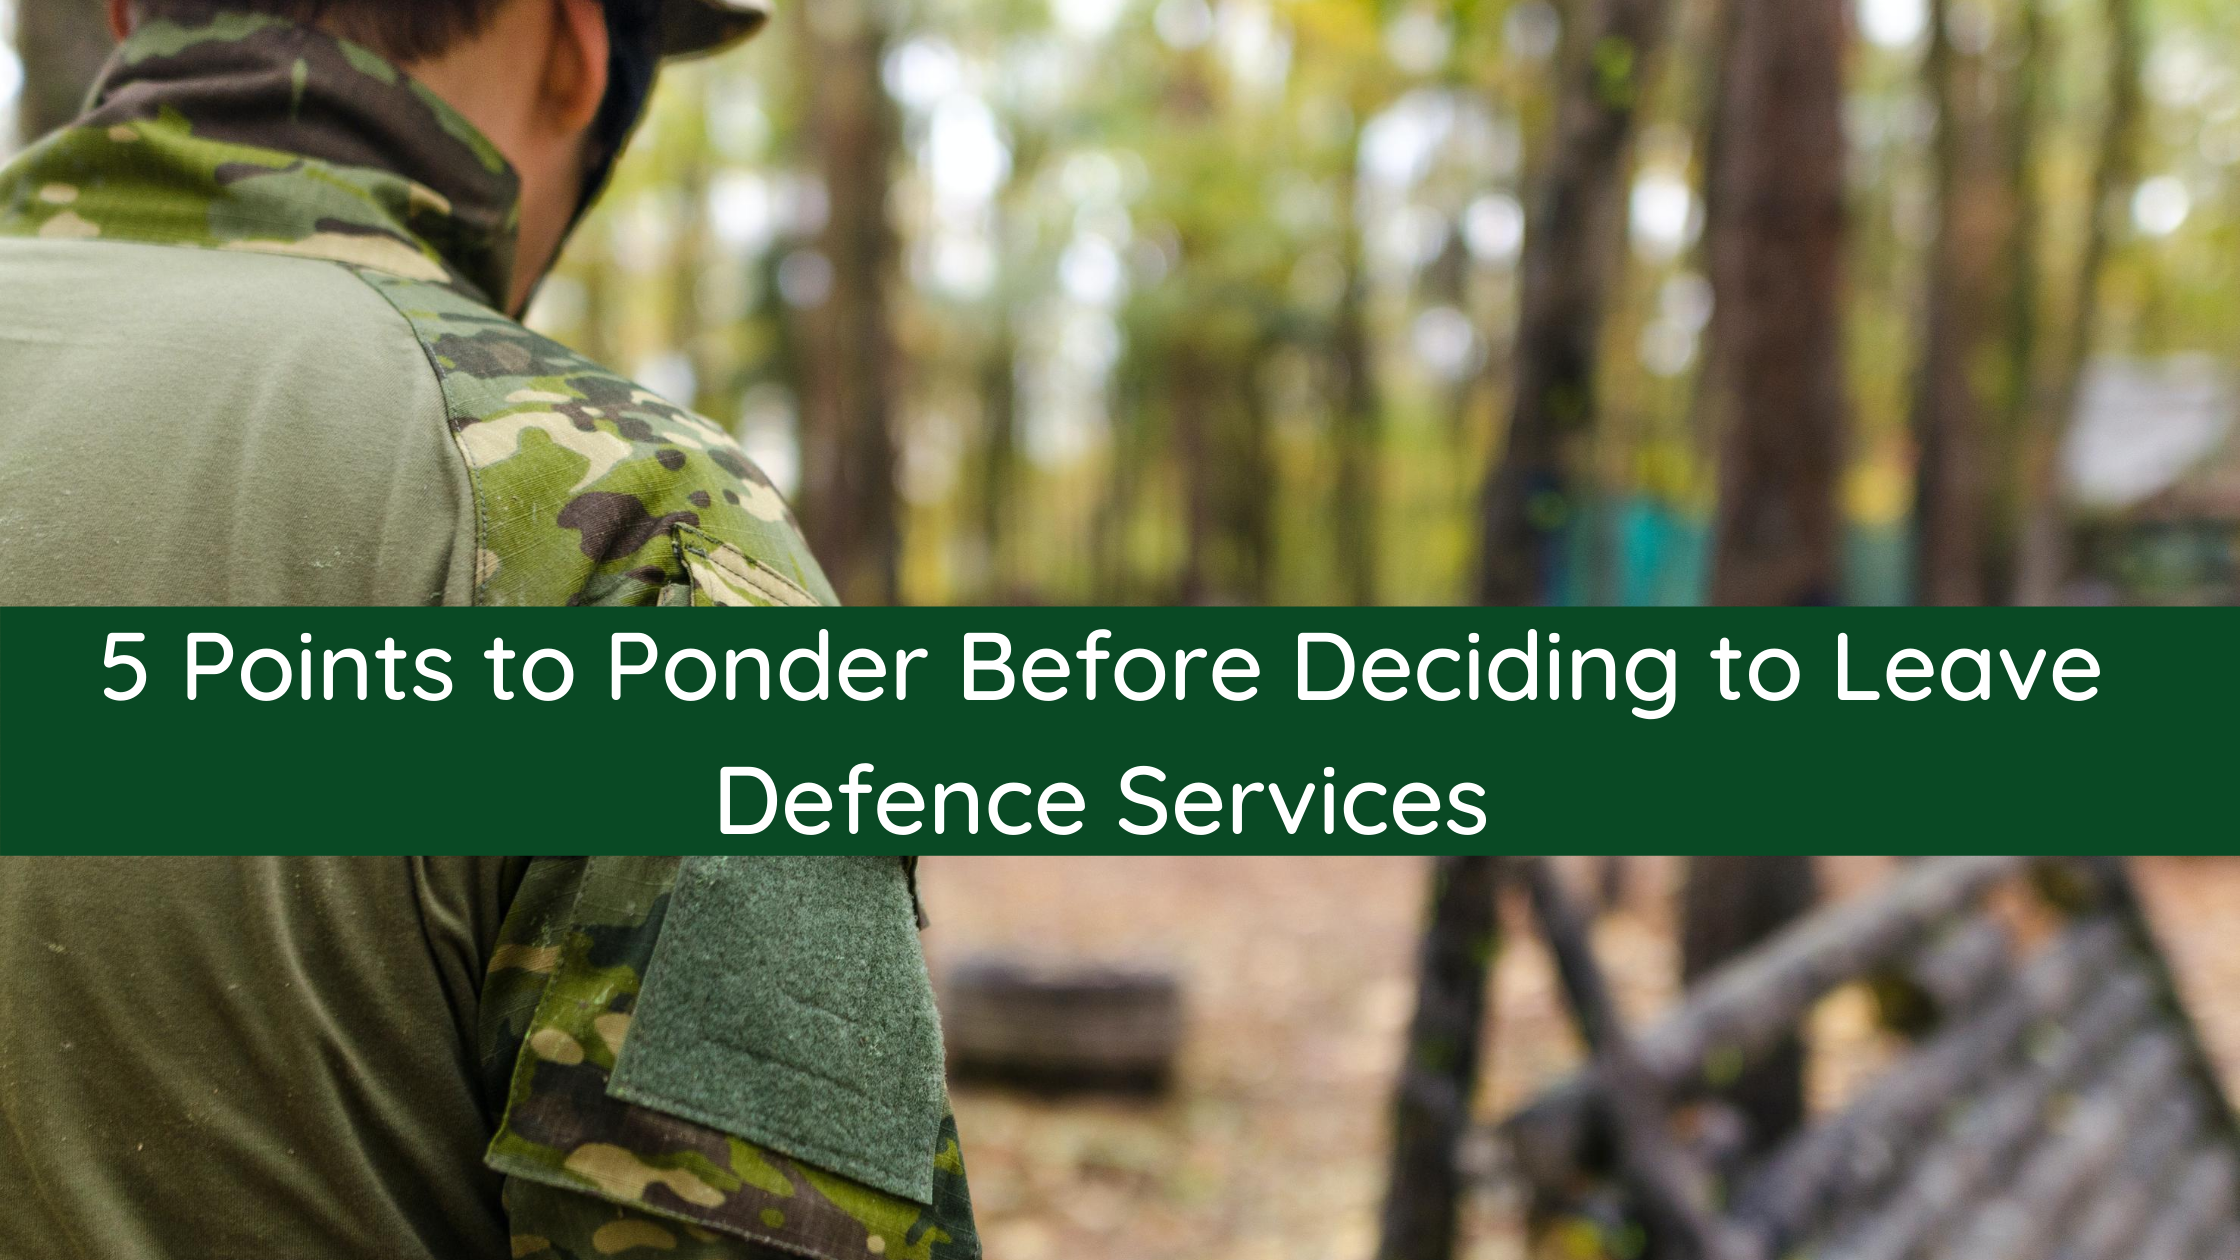 5 Points to Ponder Before Deciding to Leave Defence Services